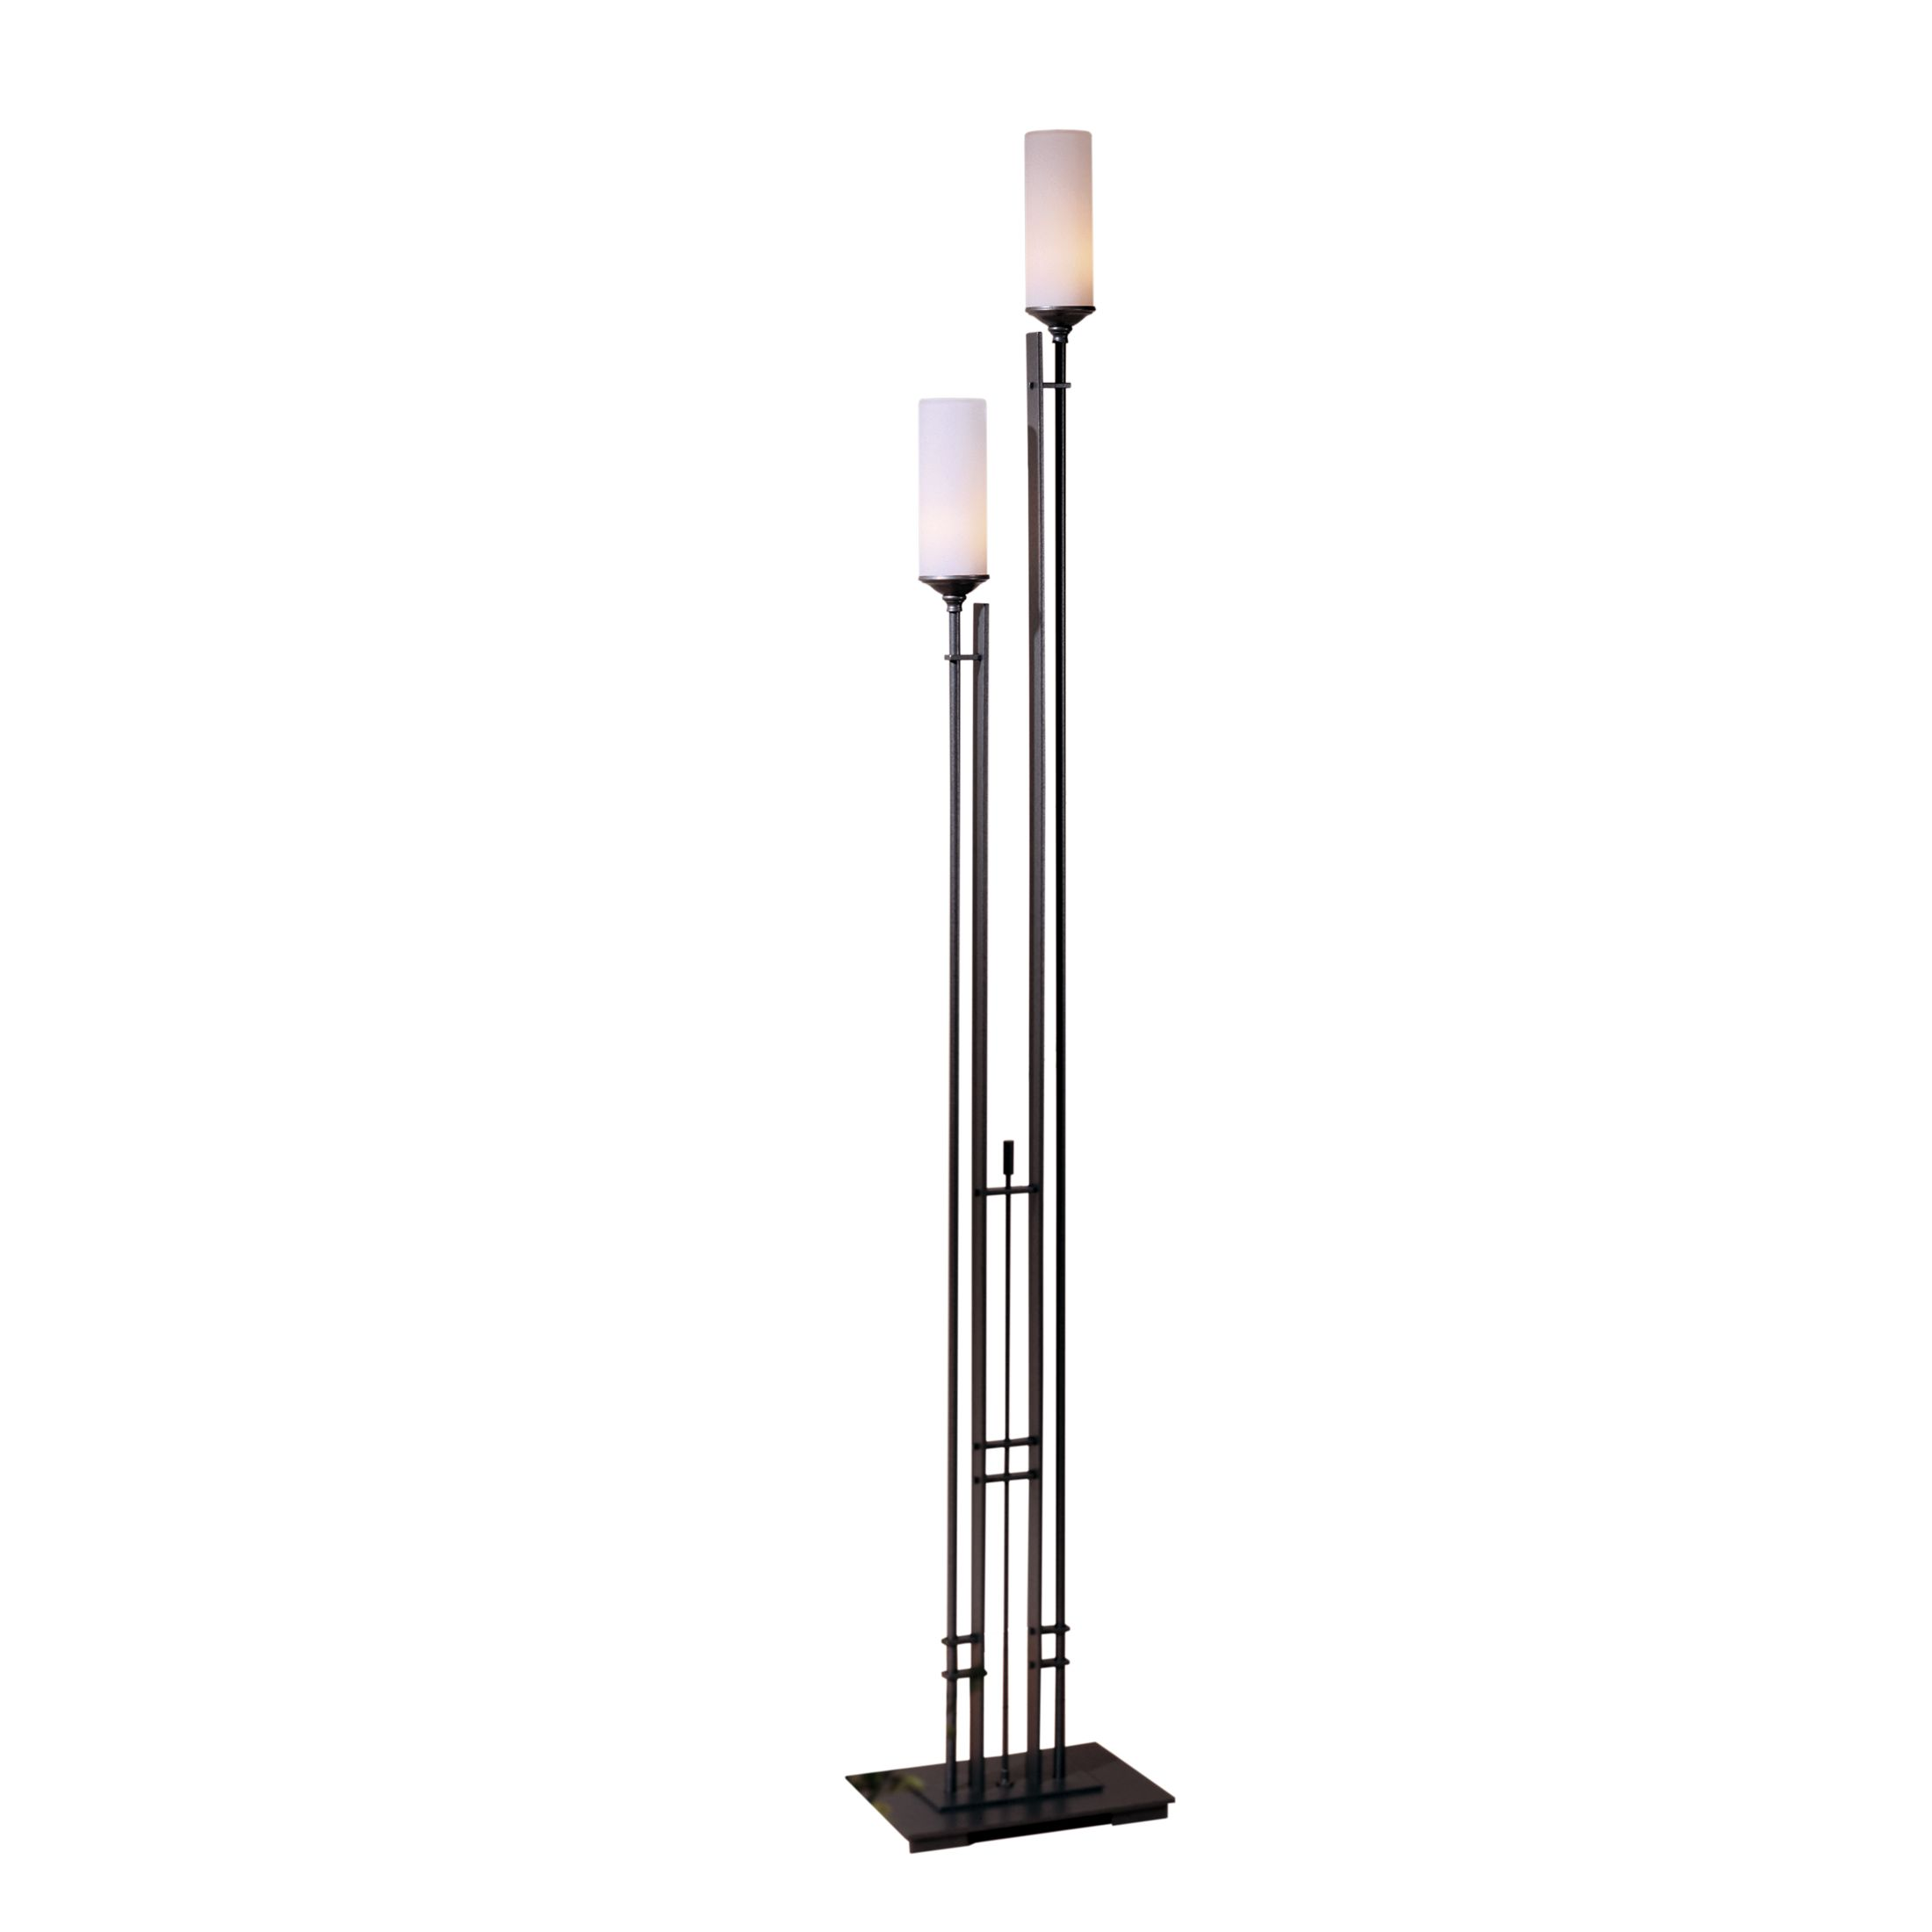 Thumbnail for Metra Twin Tall Floor Lamp